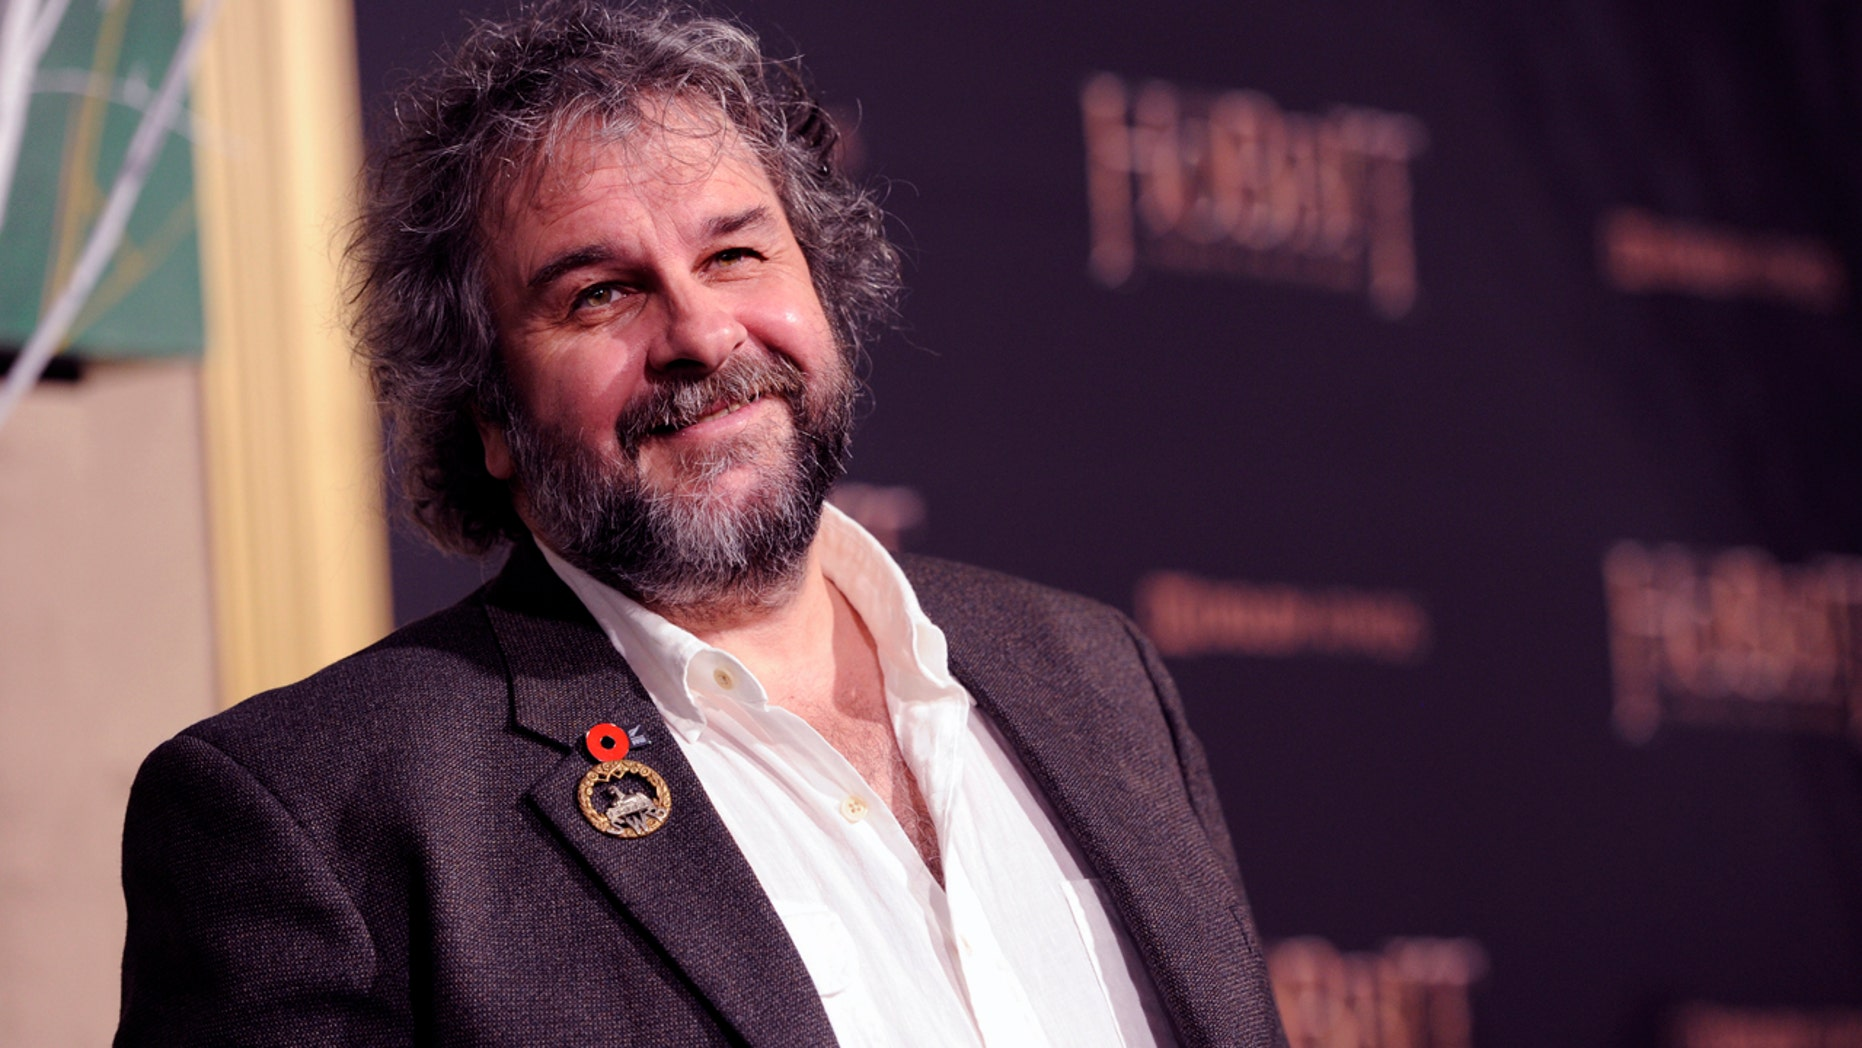 Peter Jackson, seen here in 2014, claims he was discouraged by Miramax from casting Ashley Judd and Mira Sorvino in the 'Lord of the Rings'